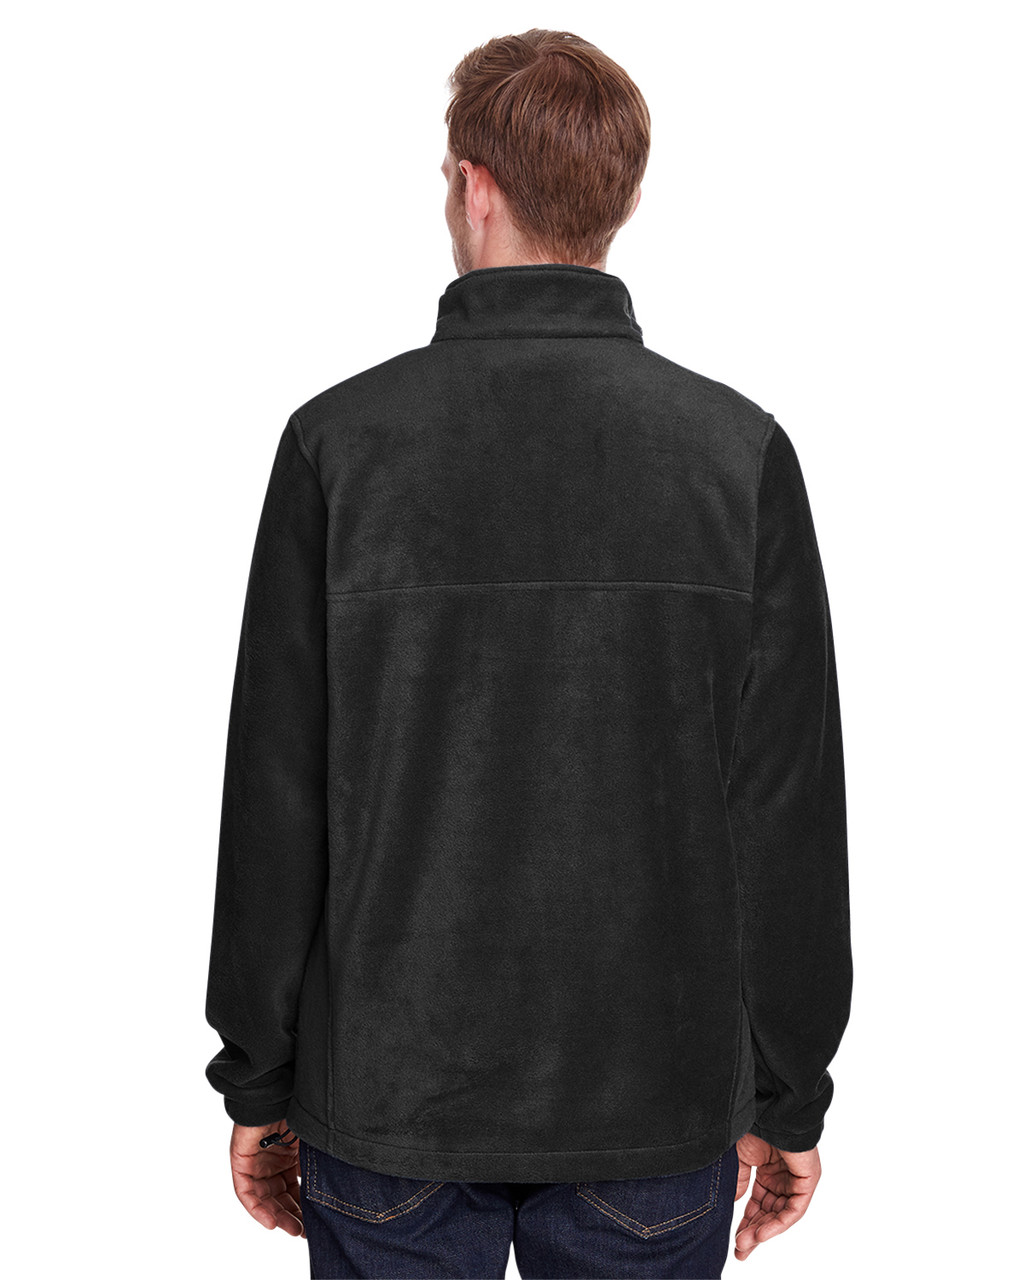 Black - Back, 1620191 Columbia Men's ST-Shirts Mountain™ Half-Zip Fleece Jacket | Blankclothing.ca